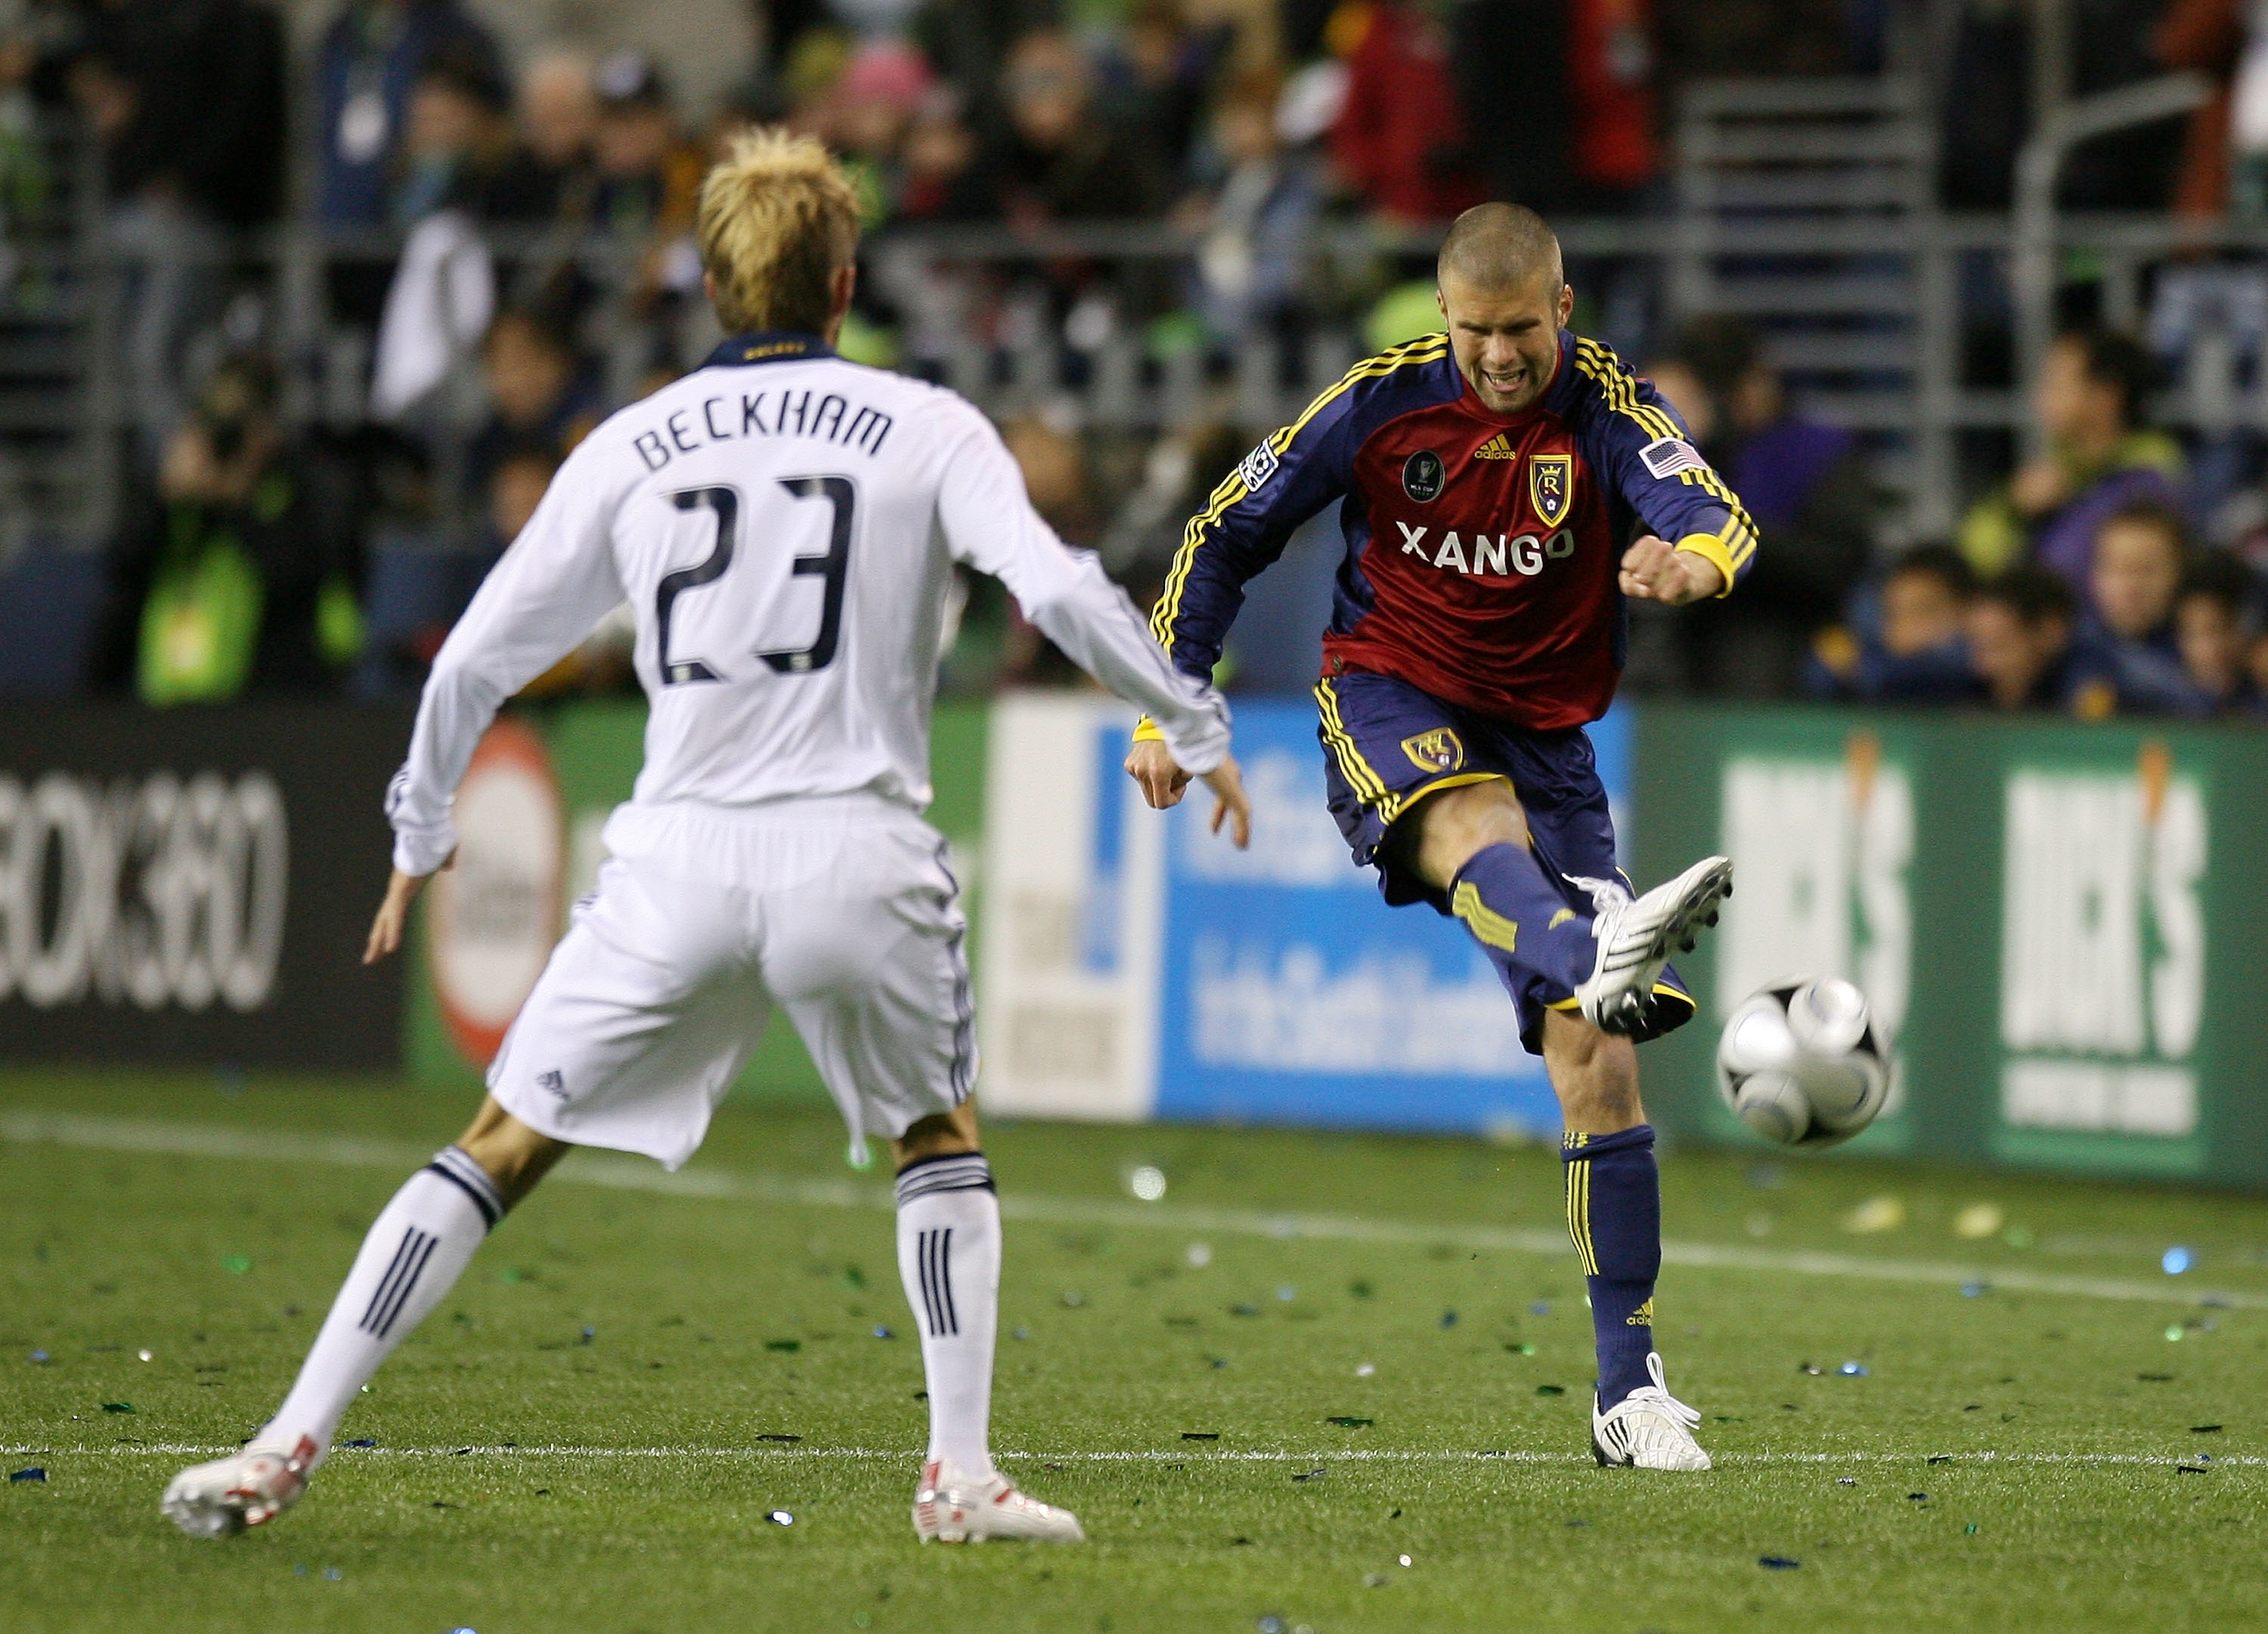 SEATTLE - NOVEMBER 22:  Chris Wingert #17 of Real Salt Lake passes the ball past David Beckham #23 of Los Angeles Galaxy during the MLS Cup final at Qwest Field on November 22, 2009 in Seattle, Washington.  (Photo by Otto Greule Jr/Getty Images)